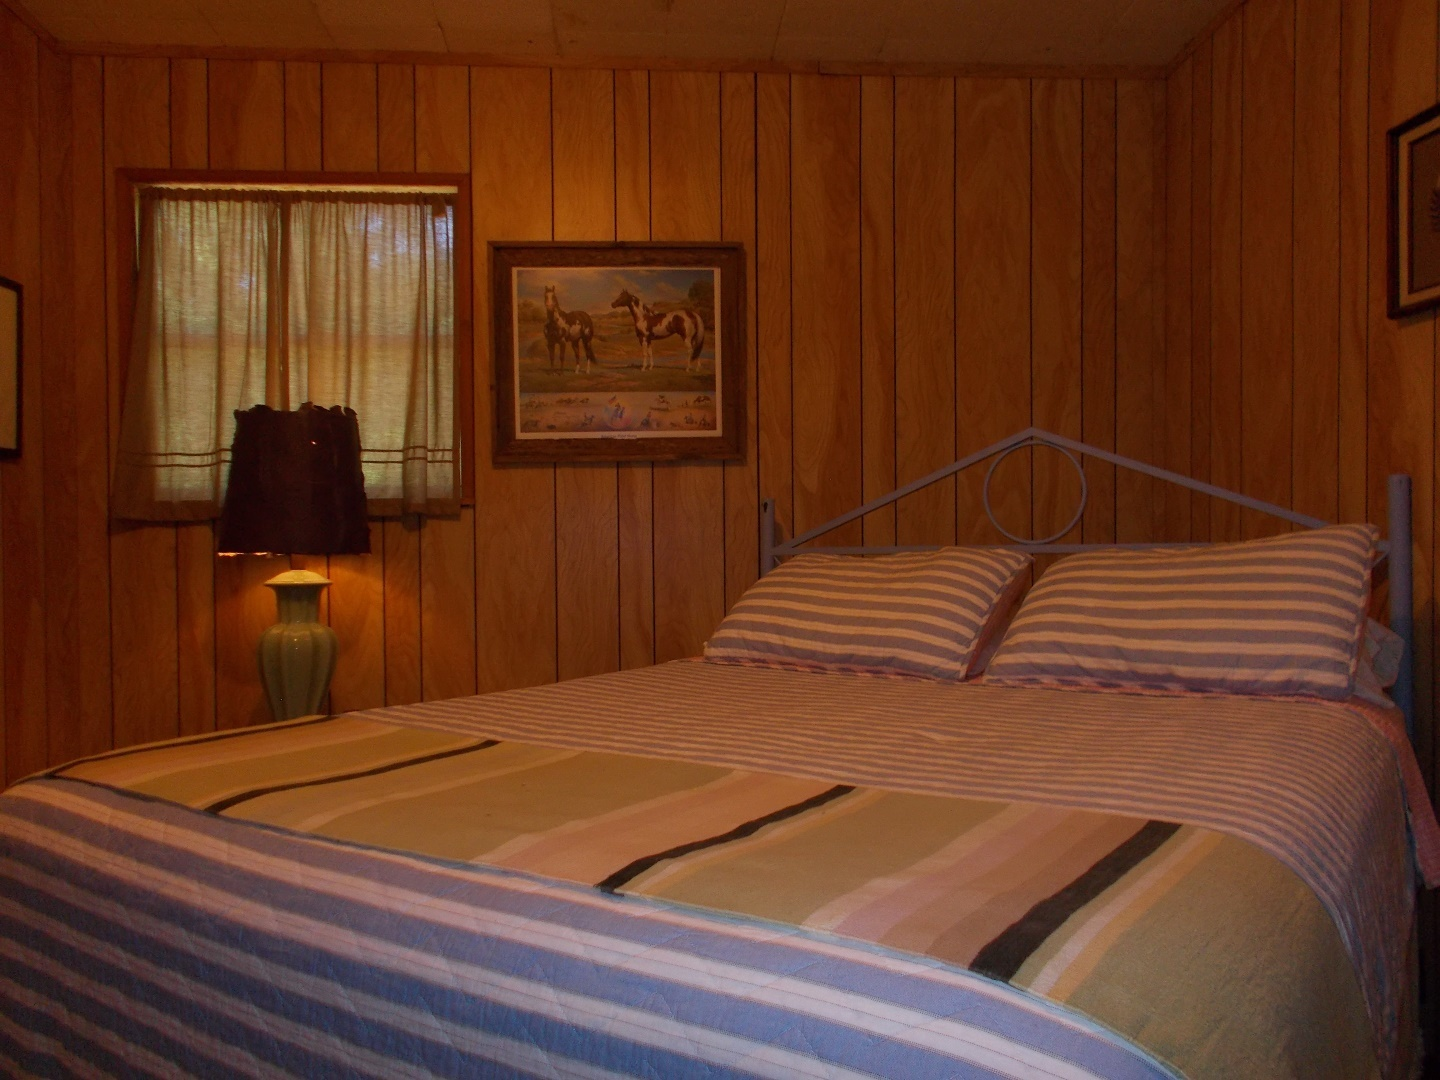 A bedroom with a bed in a room at Beans Creek Ranch Cabin.